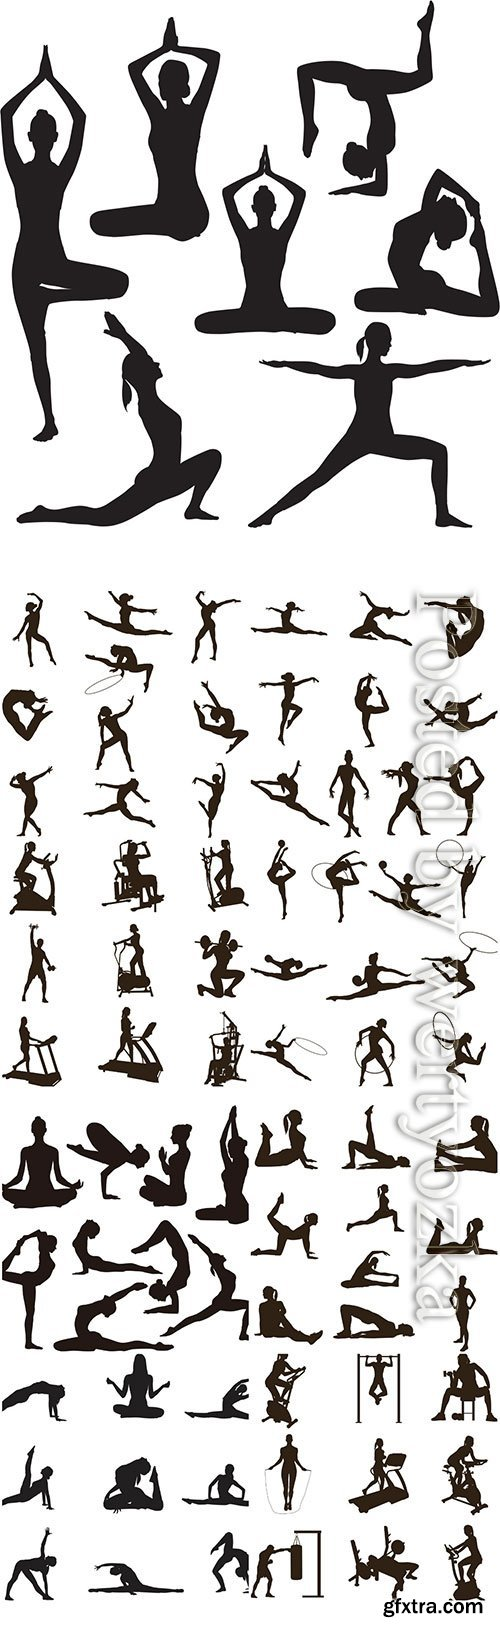 Silhouettes of women go in for sports, fitness, yoga